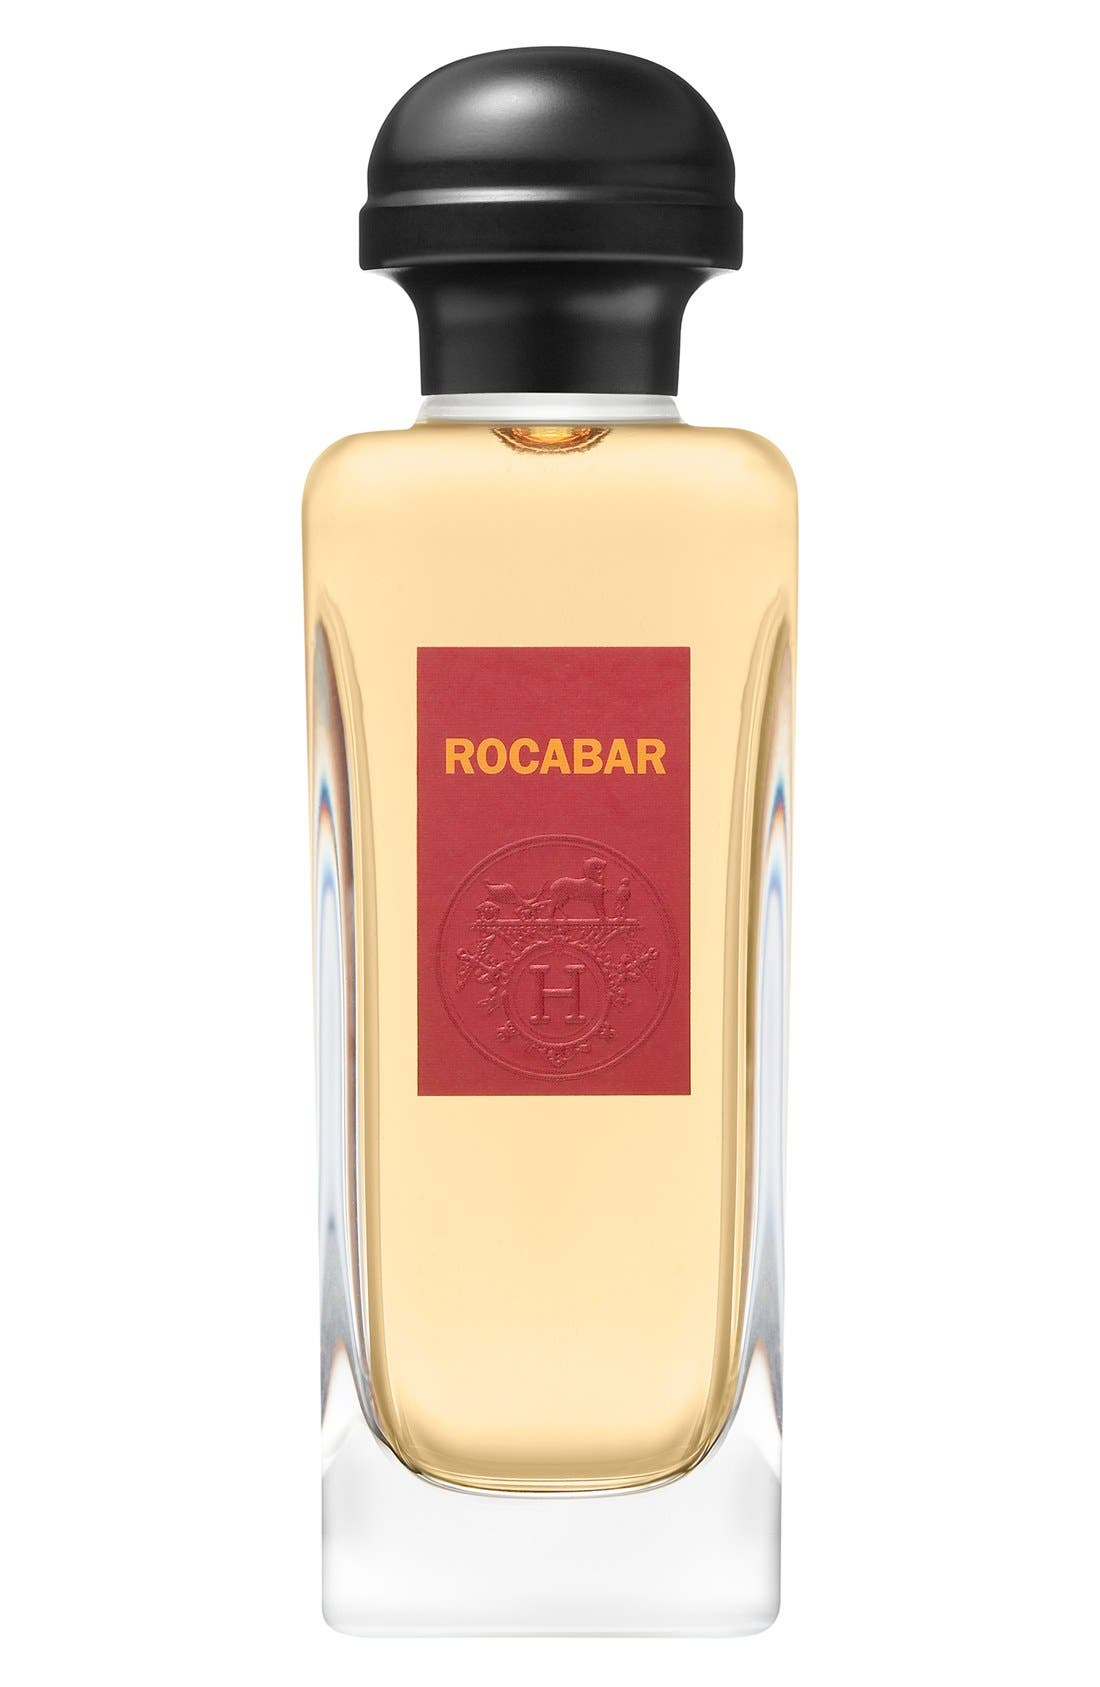 Rocabar - Eau de toilette,                             Main thumbnail 1, color,                             NO COLOR